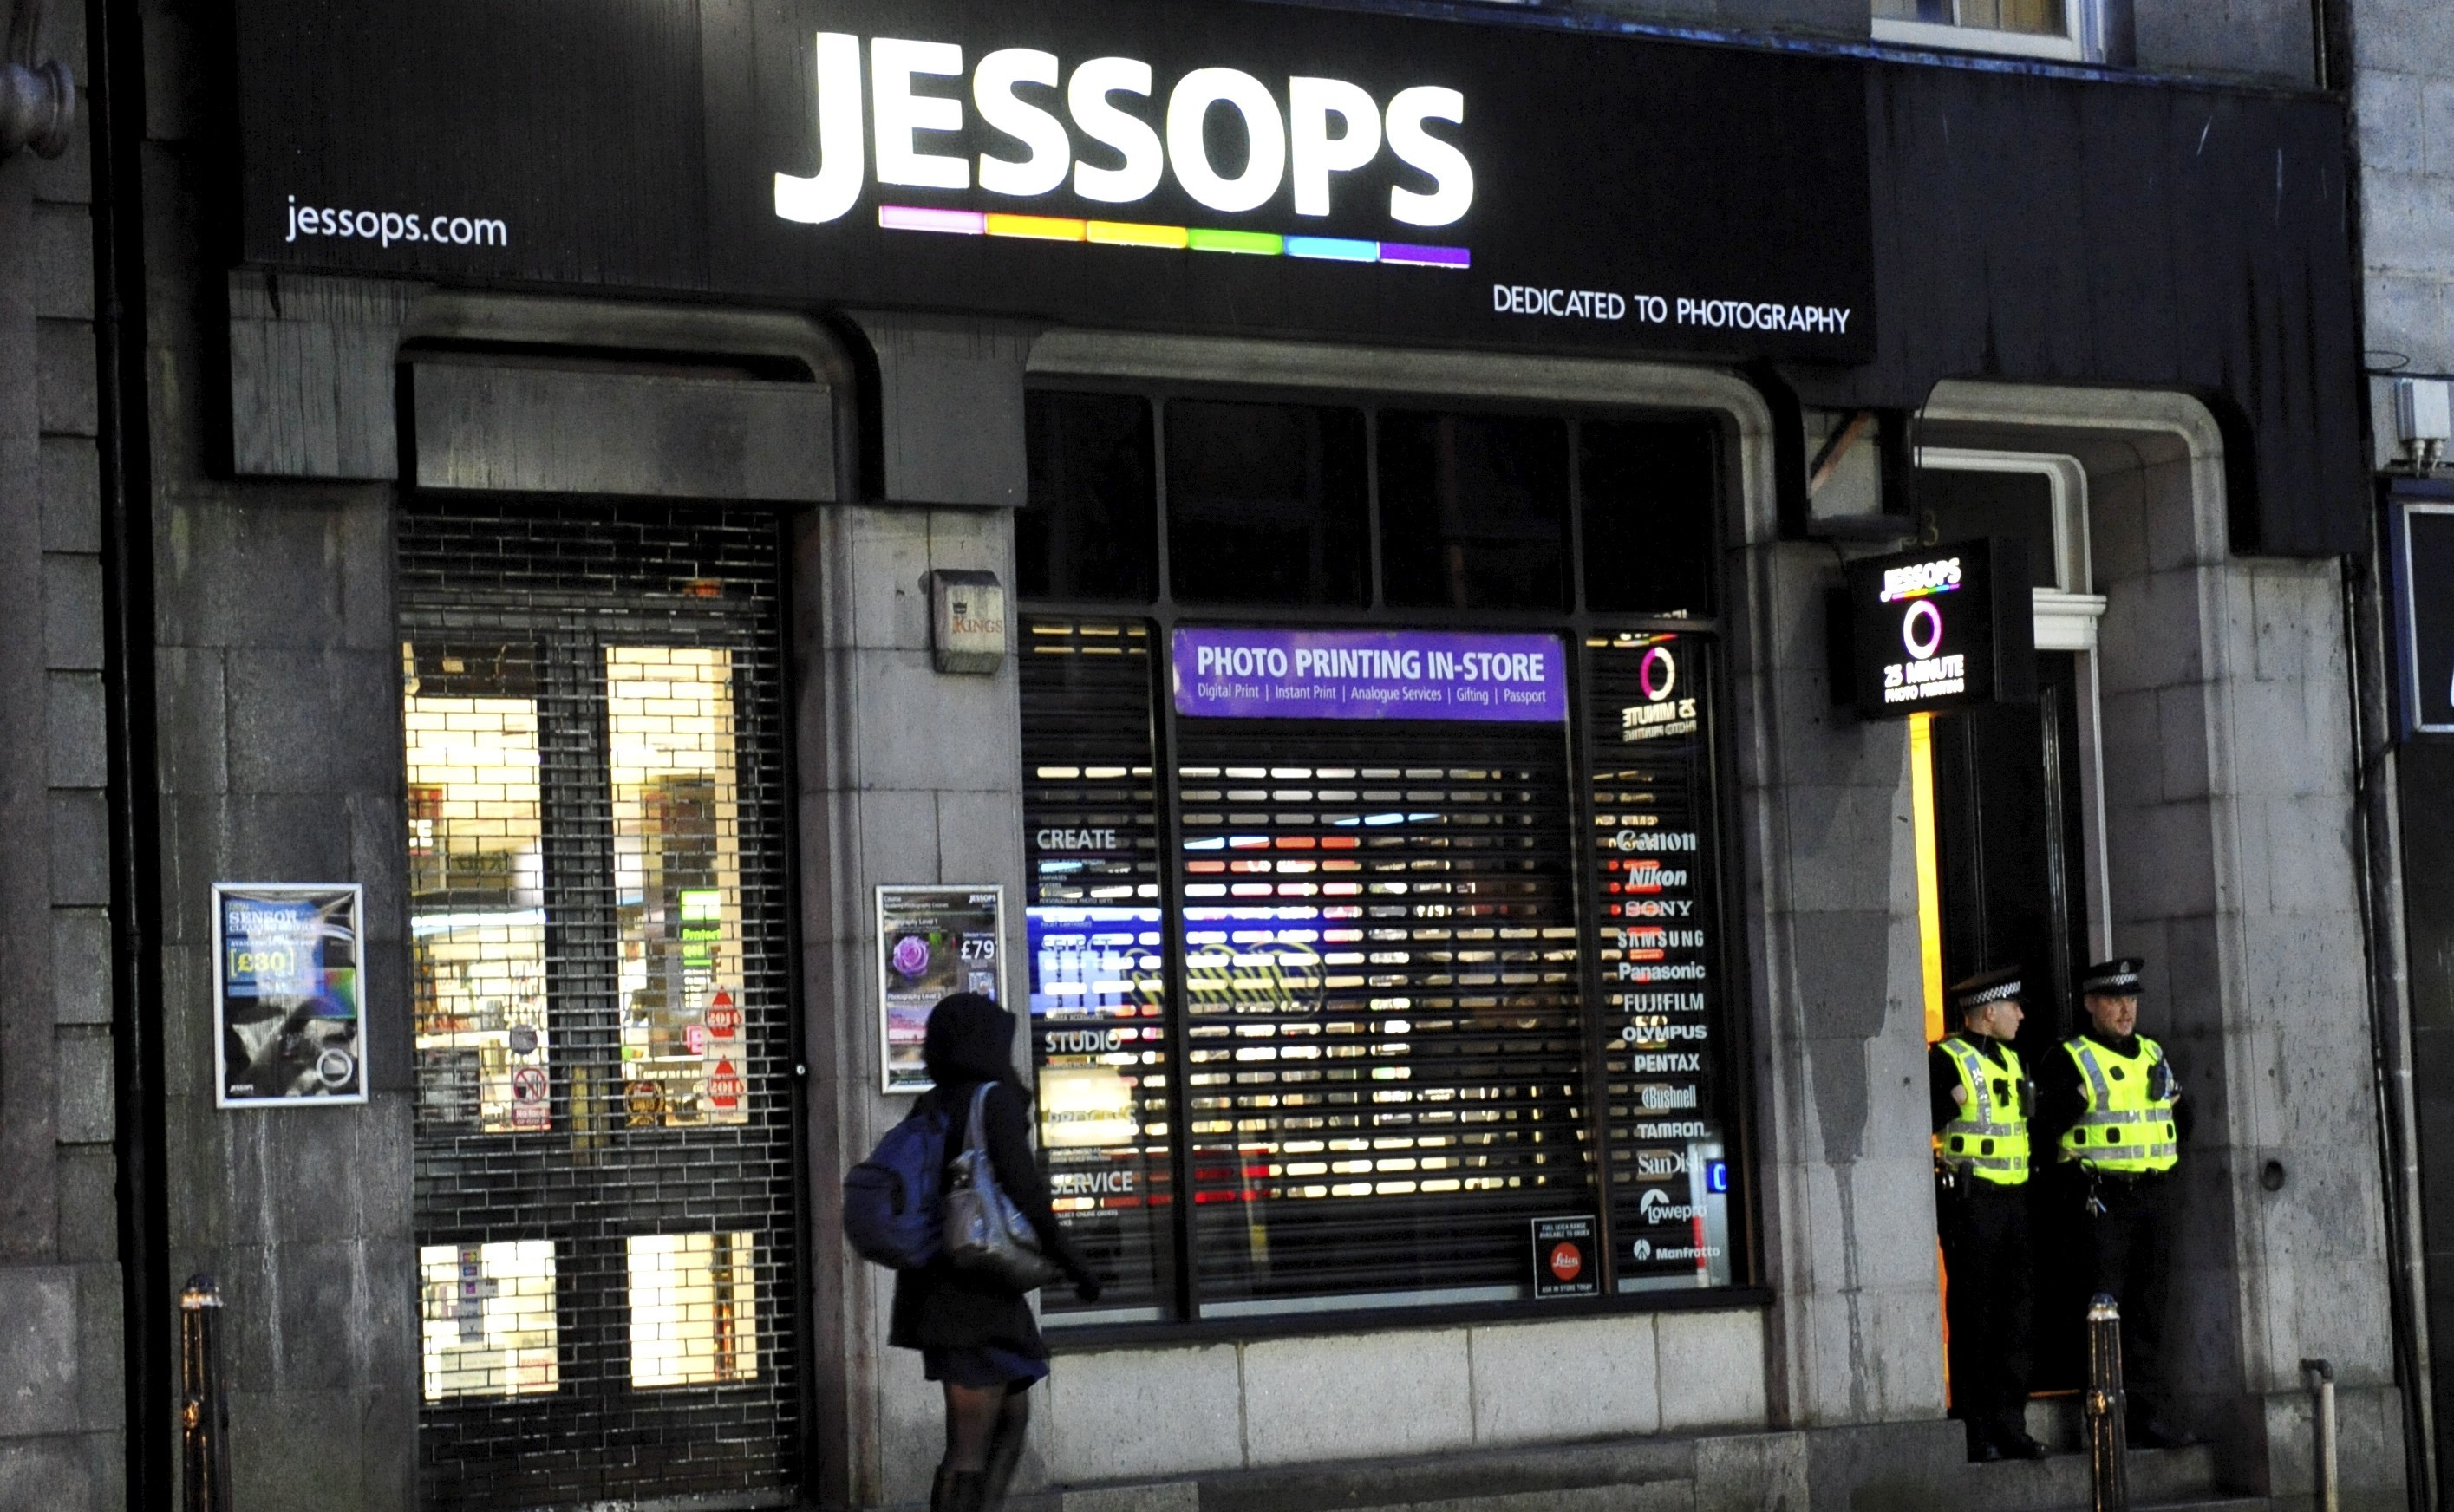 The Jessops store on Aberdeen's Market Street which was targeted.